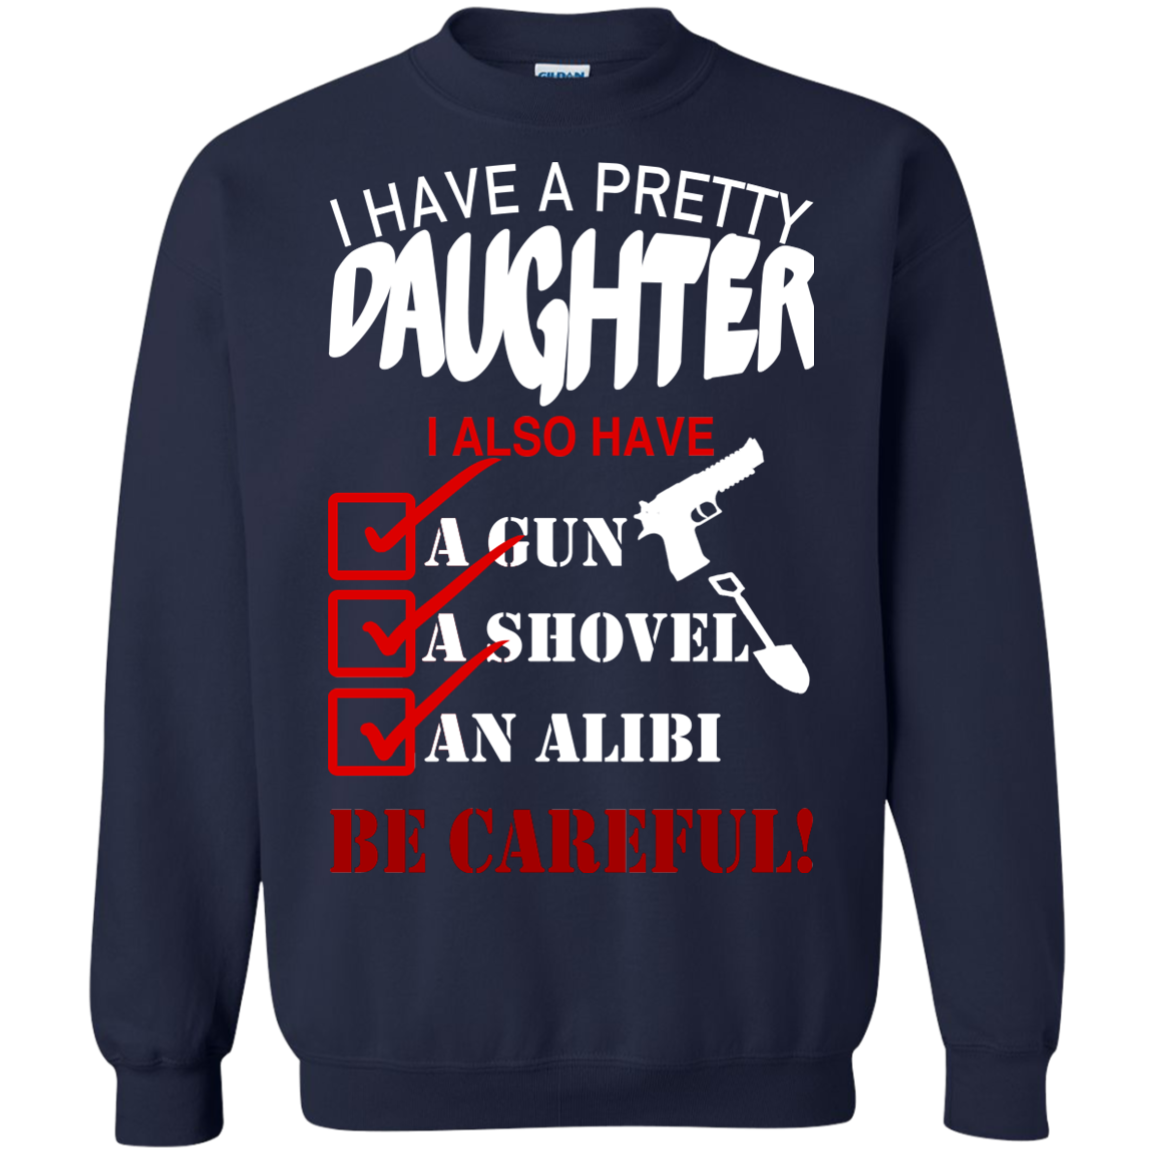 I Have A Pretty Daughter I Also Have A Gun A Shovel An Alibi Be Careful Sweatshirts